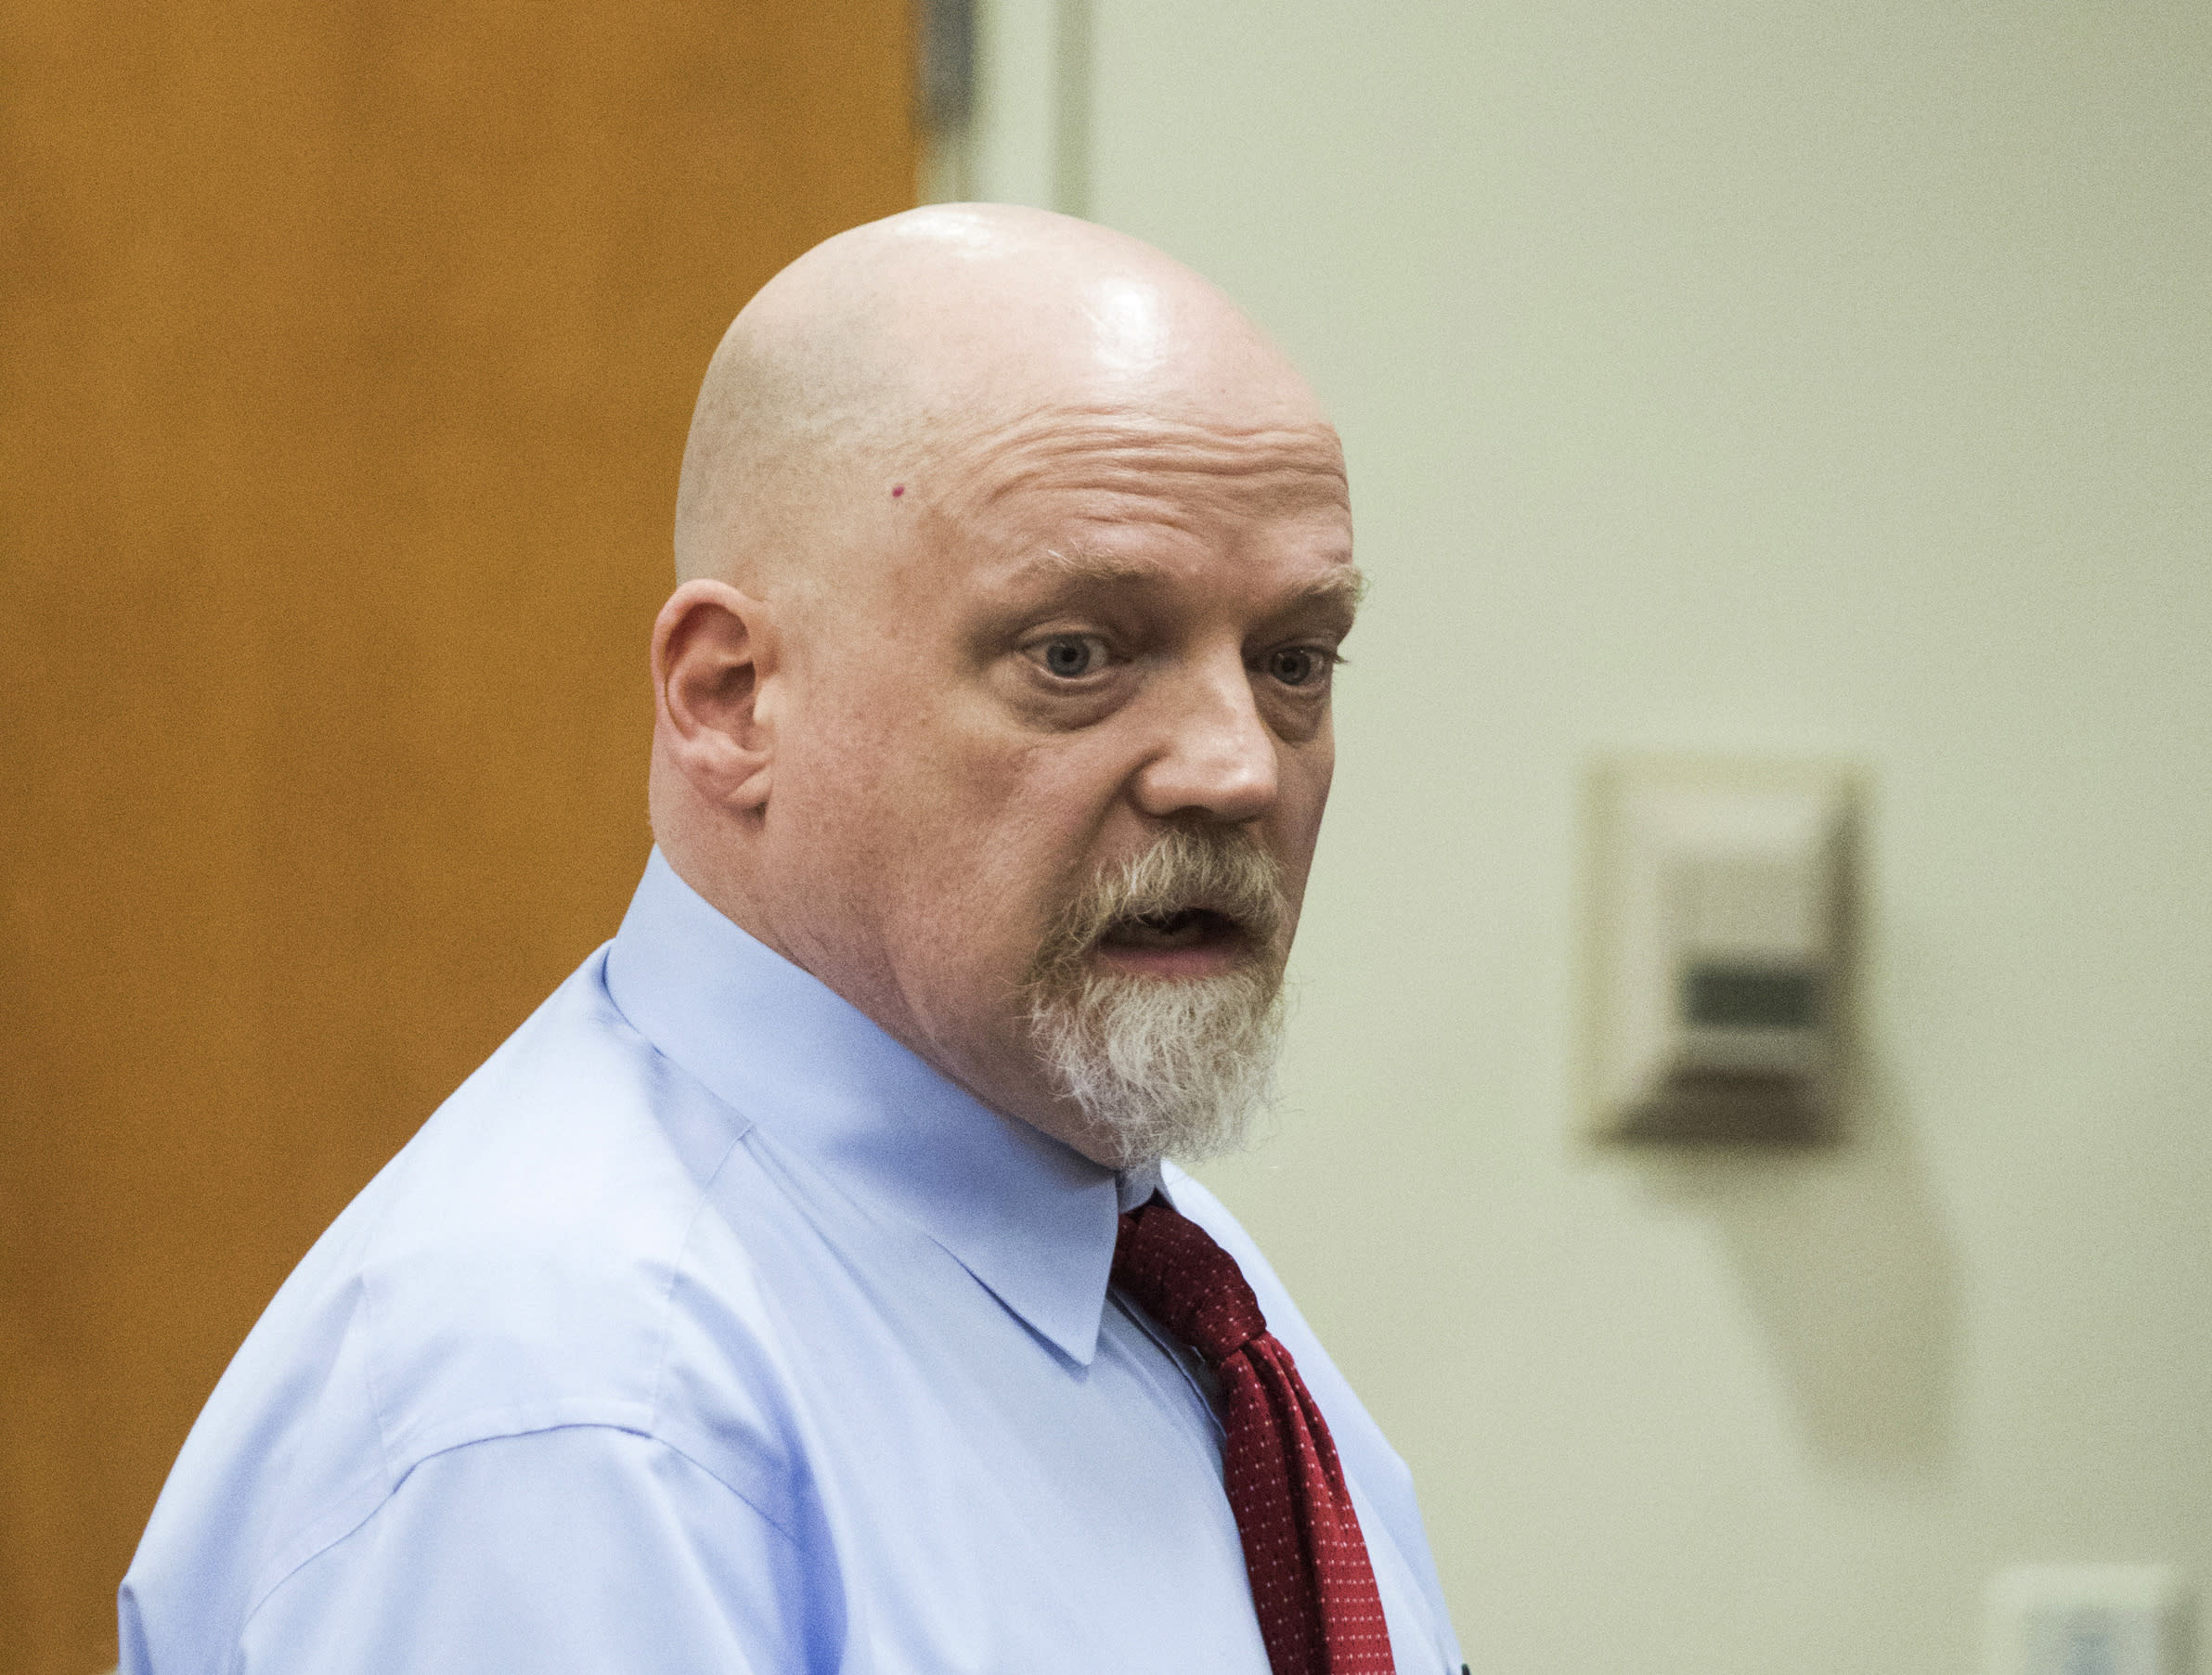 William Talbott II pleads his innocence before a judge sentences him to life without parole at the Snohomish County Courthouse on Wednesday, July 24, 2019 in Everett, Wash. Talbott, convicted of killing a young Canadian couple more than three decades ago after a trial that hinged on DNA evidence and newly-emerged genealogical technology, was sentenced by a judge in Washington state Wednesday to life in prison. (Andy Bronson/The Herald via AP)